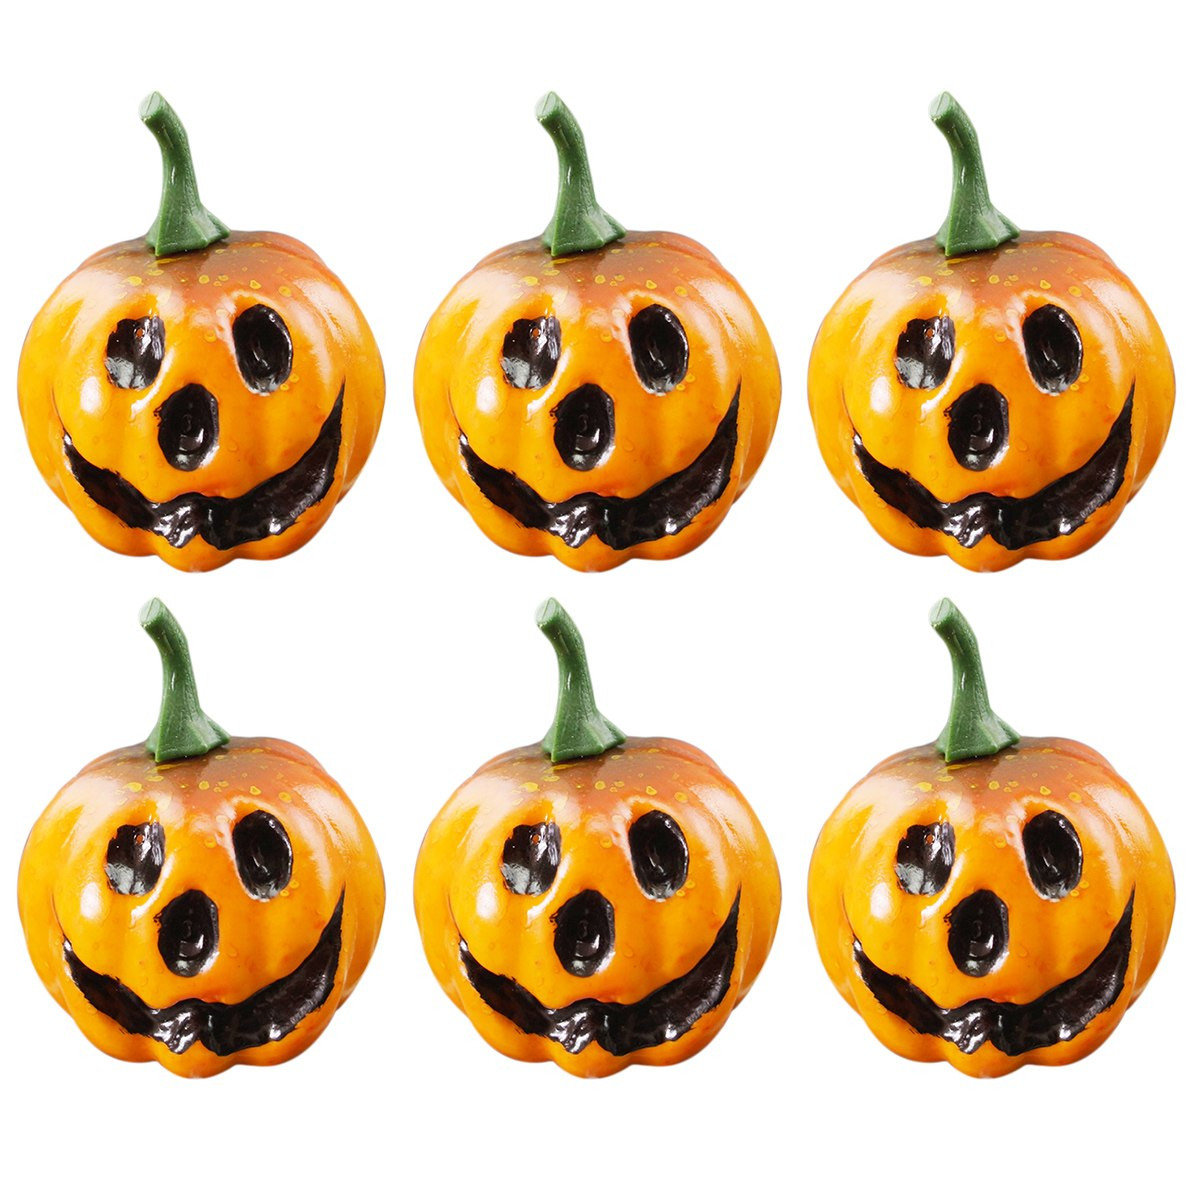 pumpkin vase filler of 12 pcs simulation artificial lifelike small foam pumpkins carved with regard to 12 pcs simulation artificial lifelike small foam pumpkins carved face table centerpiece photo props halloween decoration party in artificial foods